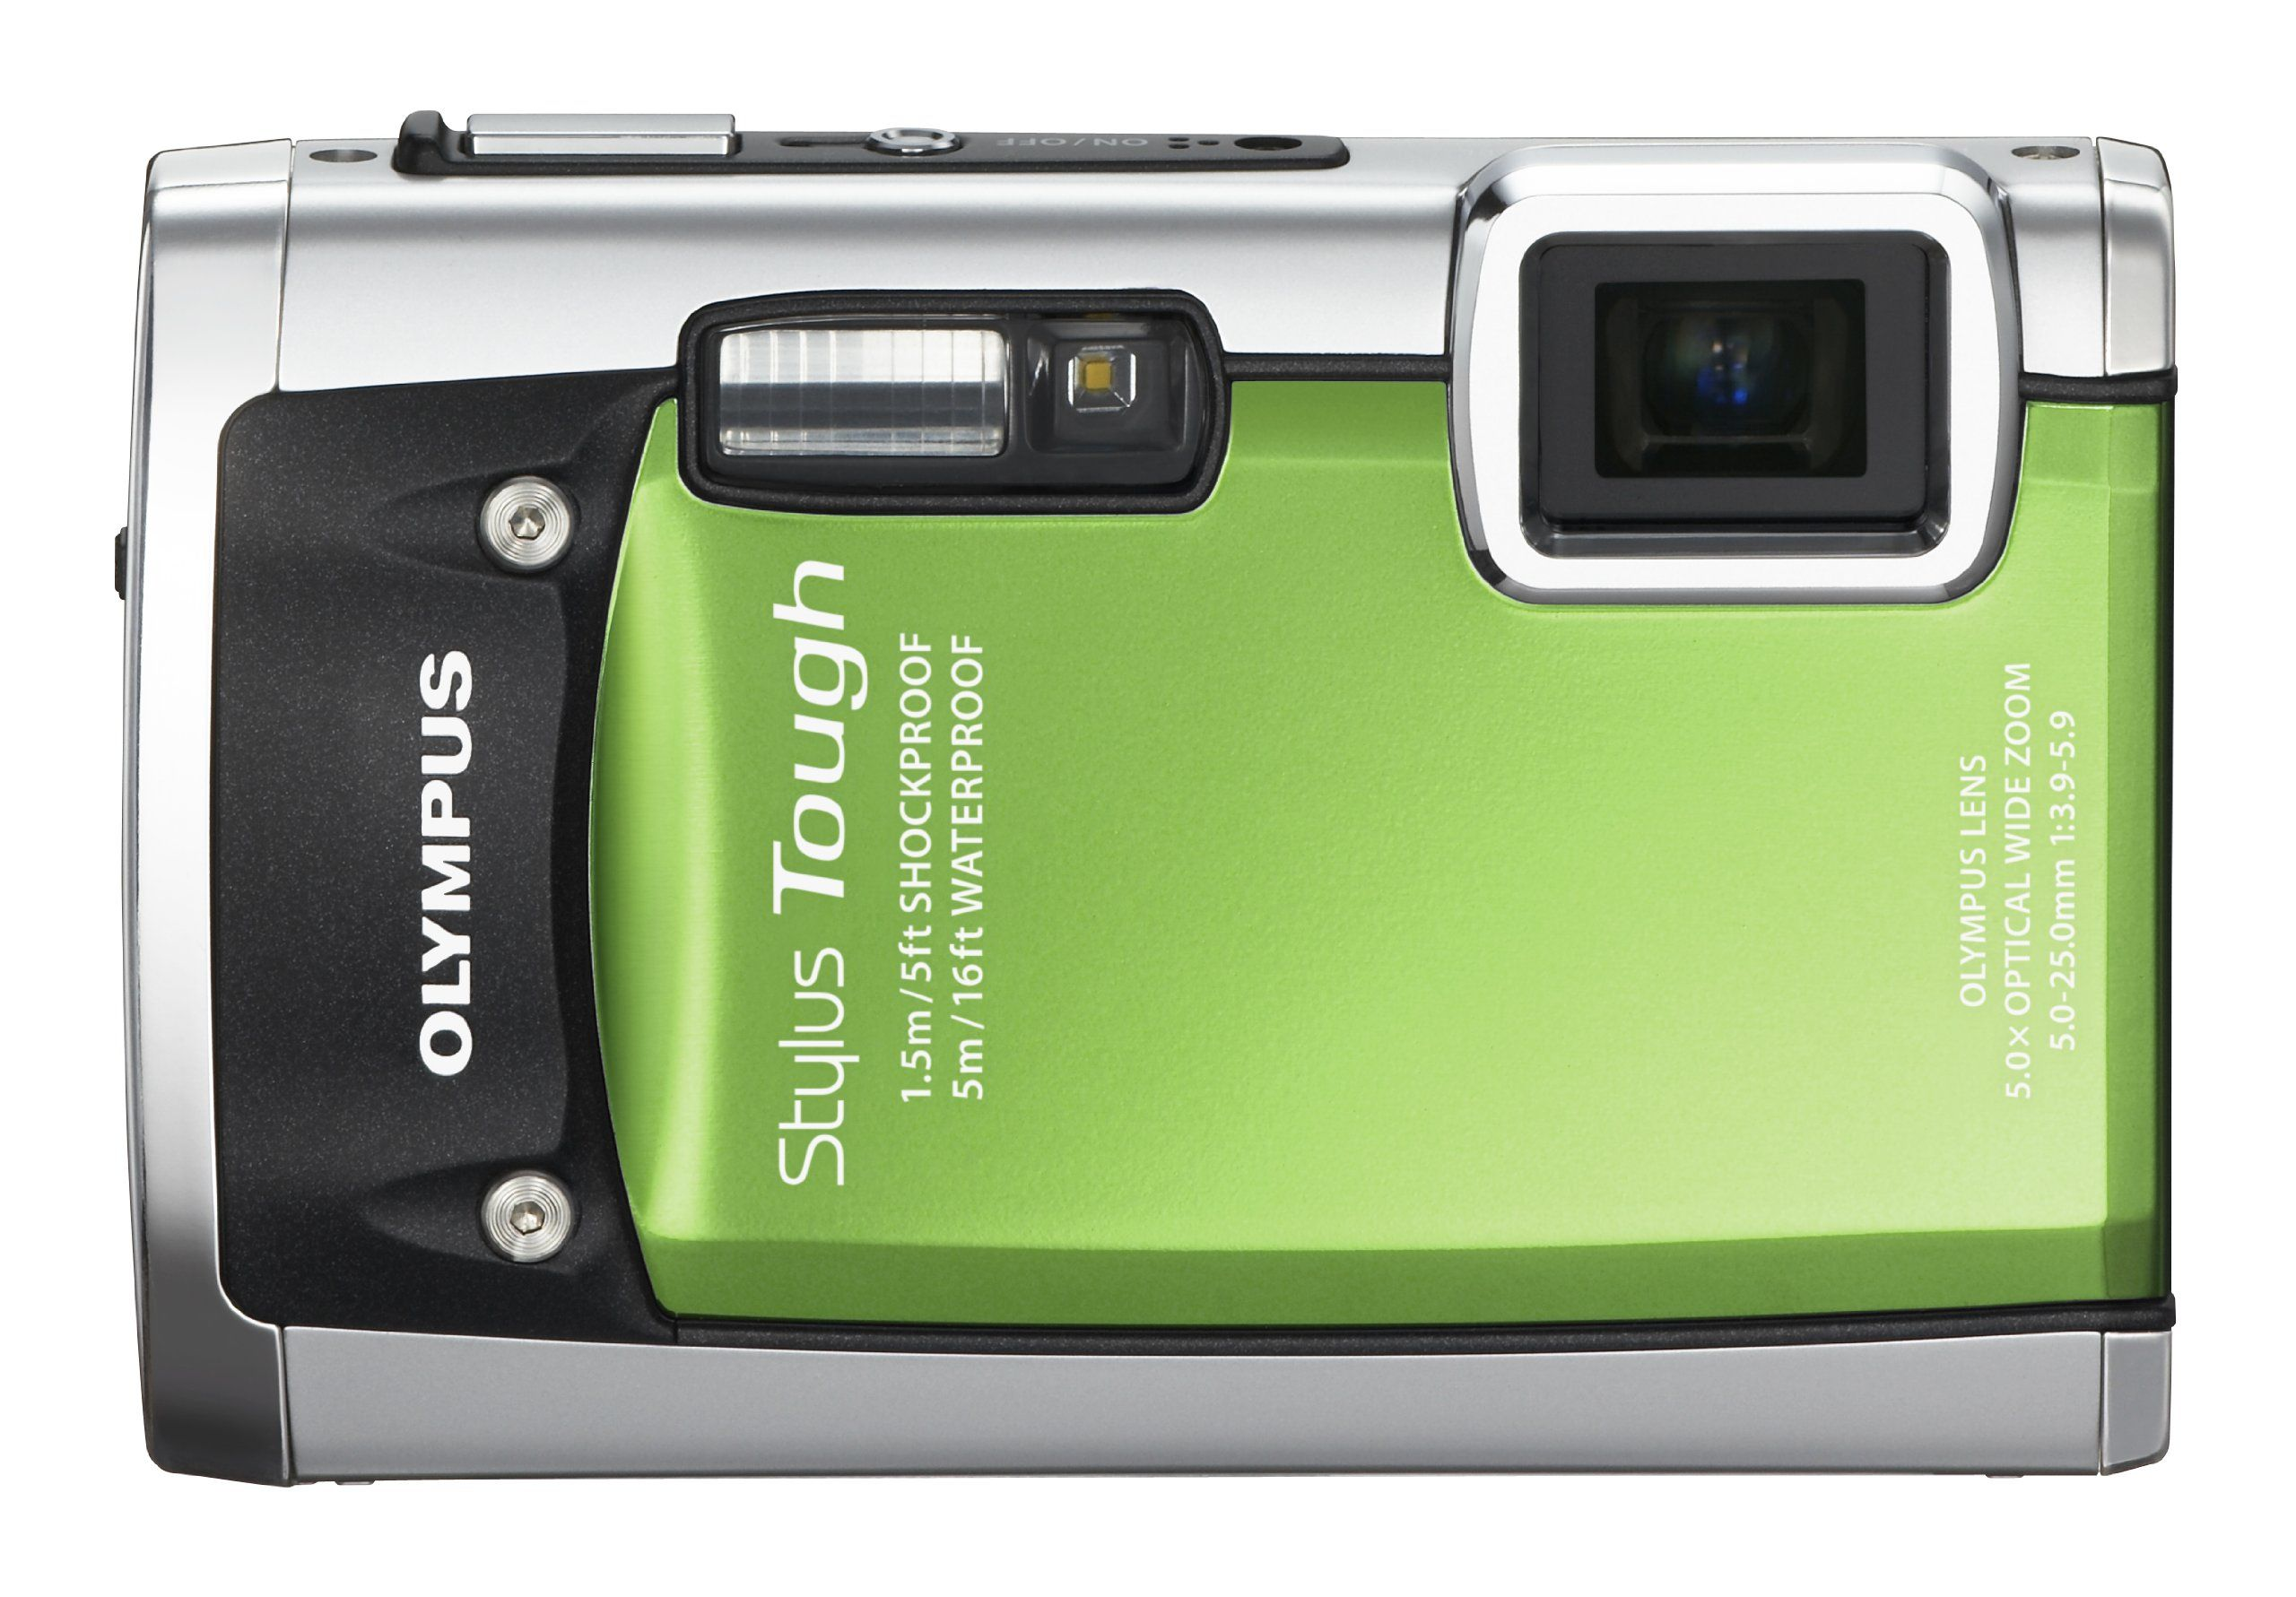 Olympus Stylus Tough 6020 14mp Digital Camera With 5x Wide Angle Zoom And 2 7 Inch Lcd Green Old Model 14 Digital Camera Underwater Camera Stylish Camera